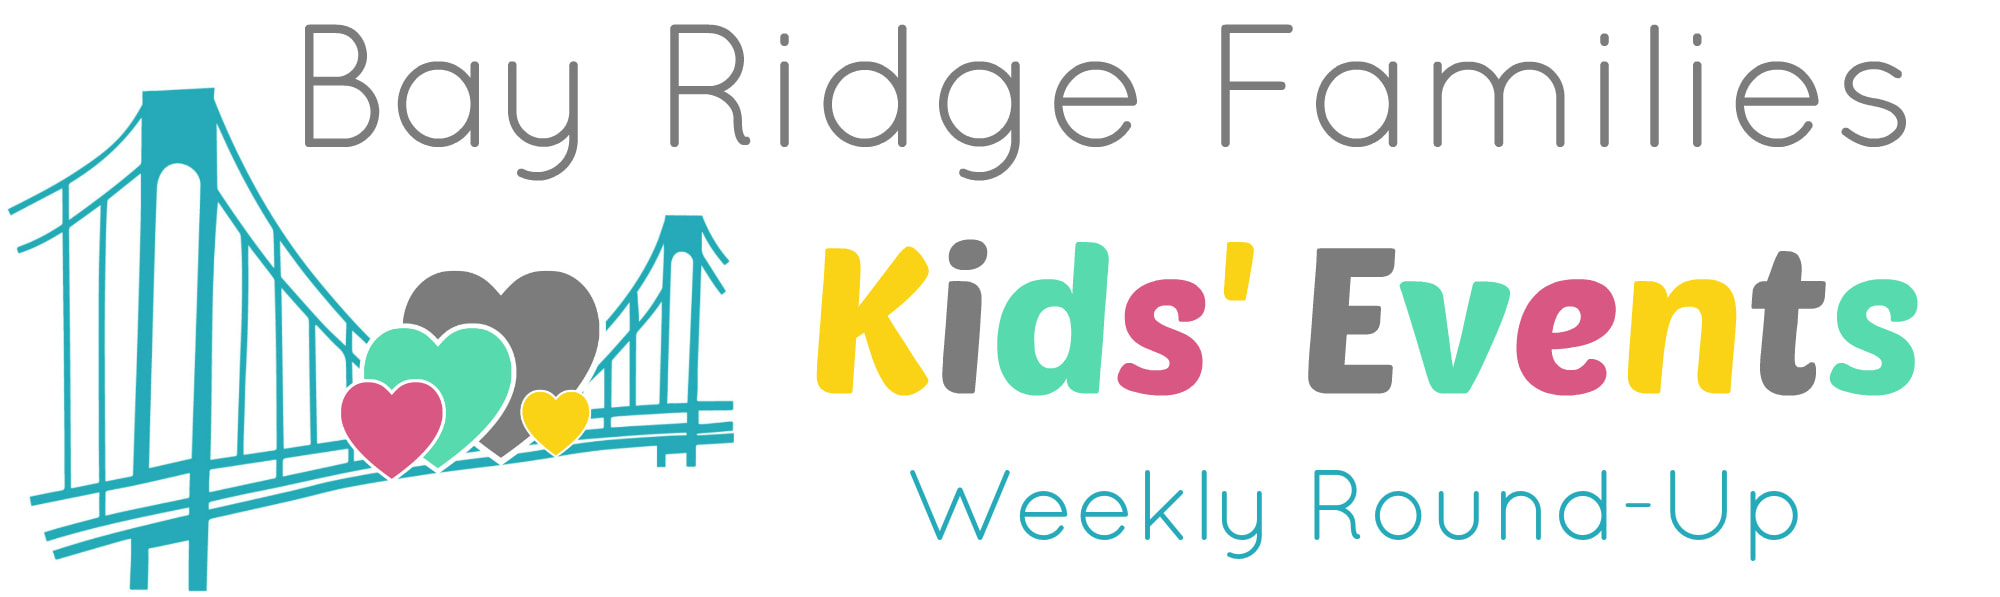 Bay Ridge Families' weekly kids' events roundup for the week of December 14 - 20, 2017